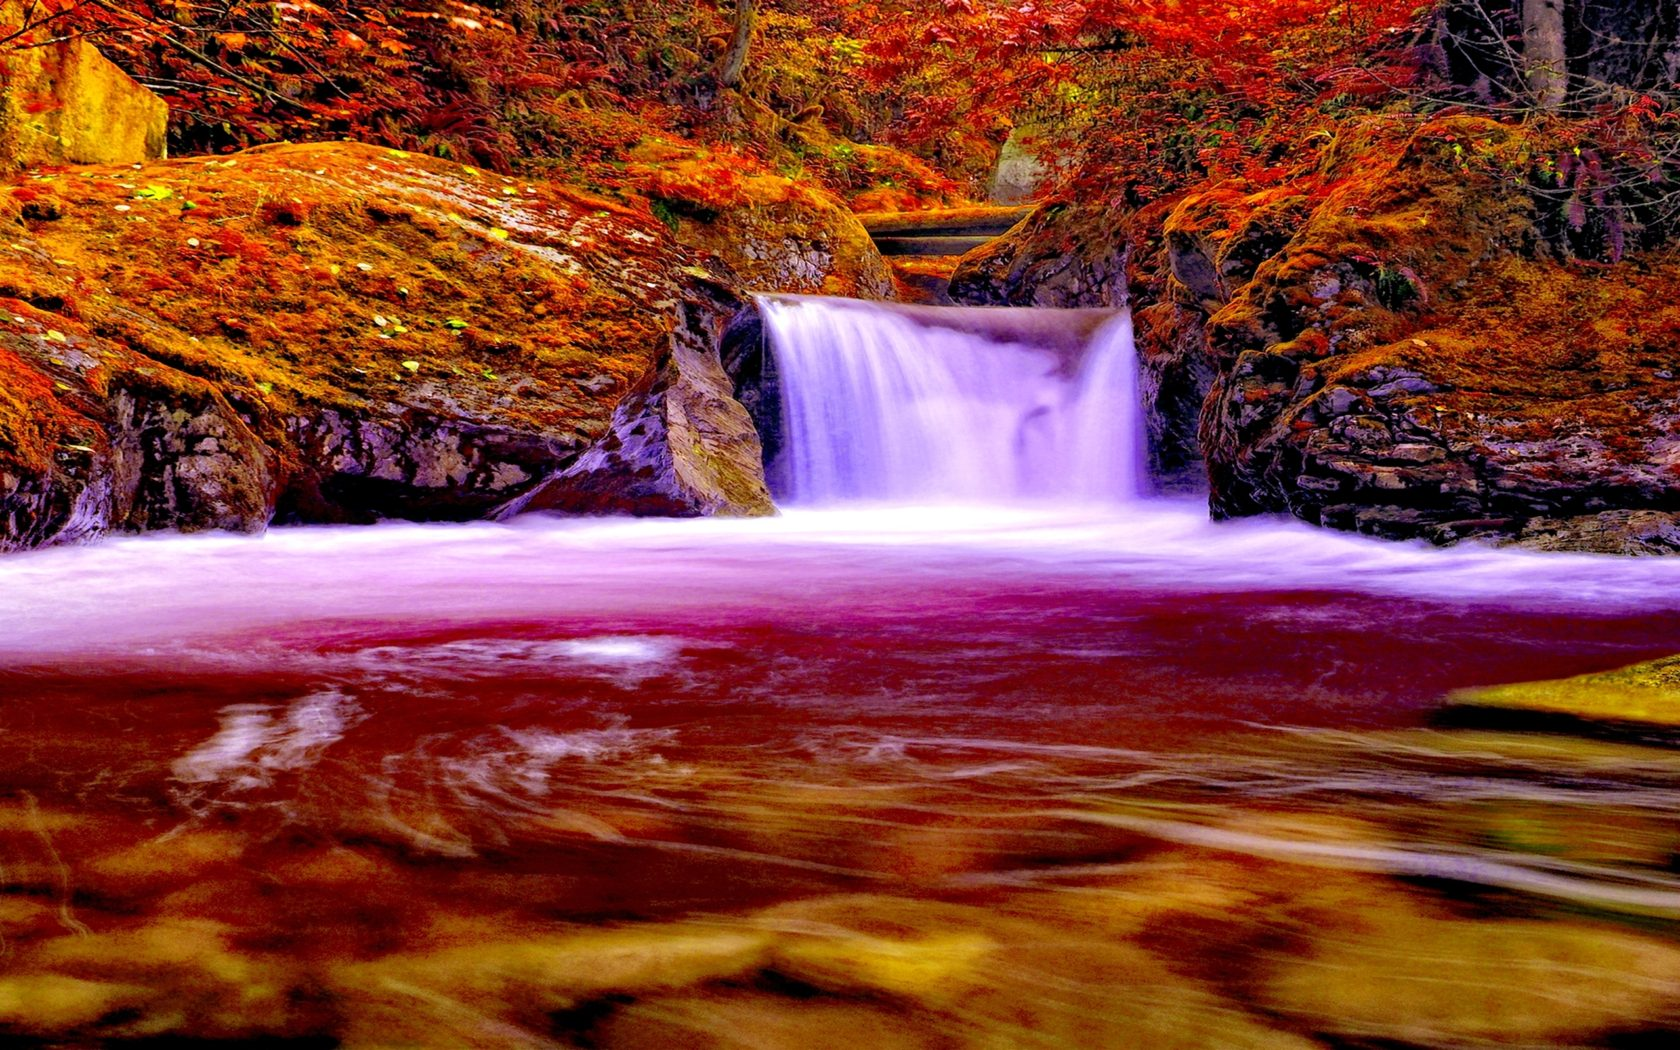 Fall Forest Wallpaper Autumn Forest Falls Nature Waterfall 745340 2560x1600